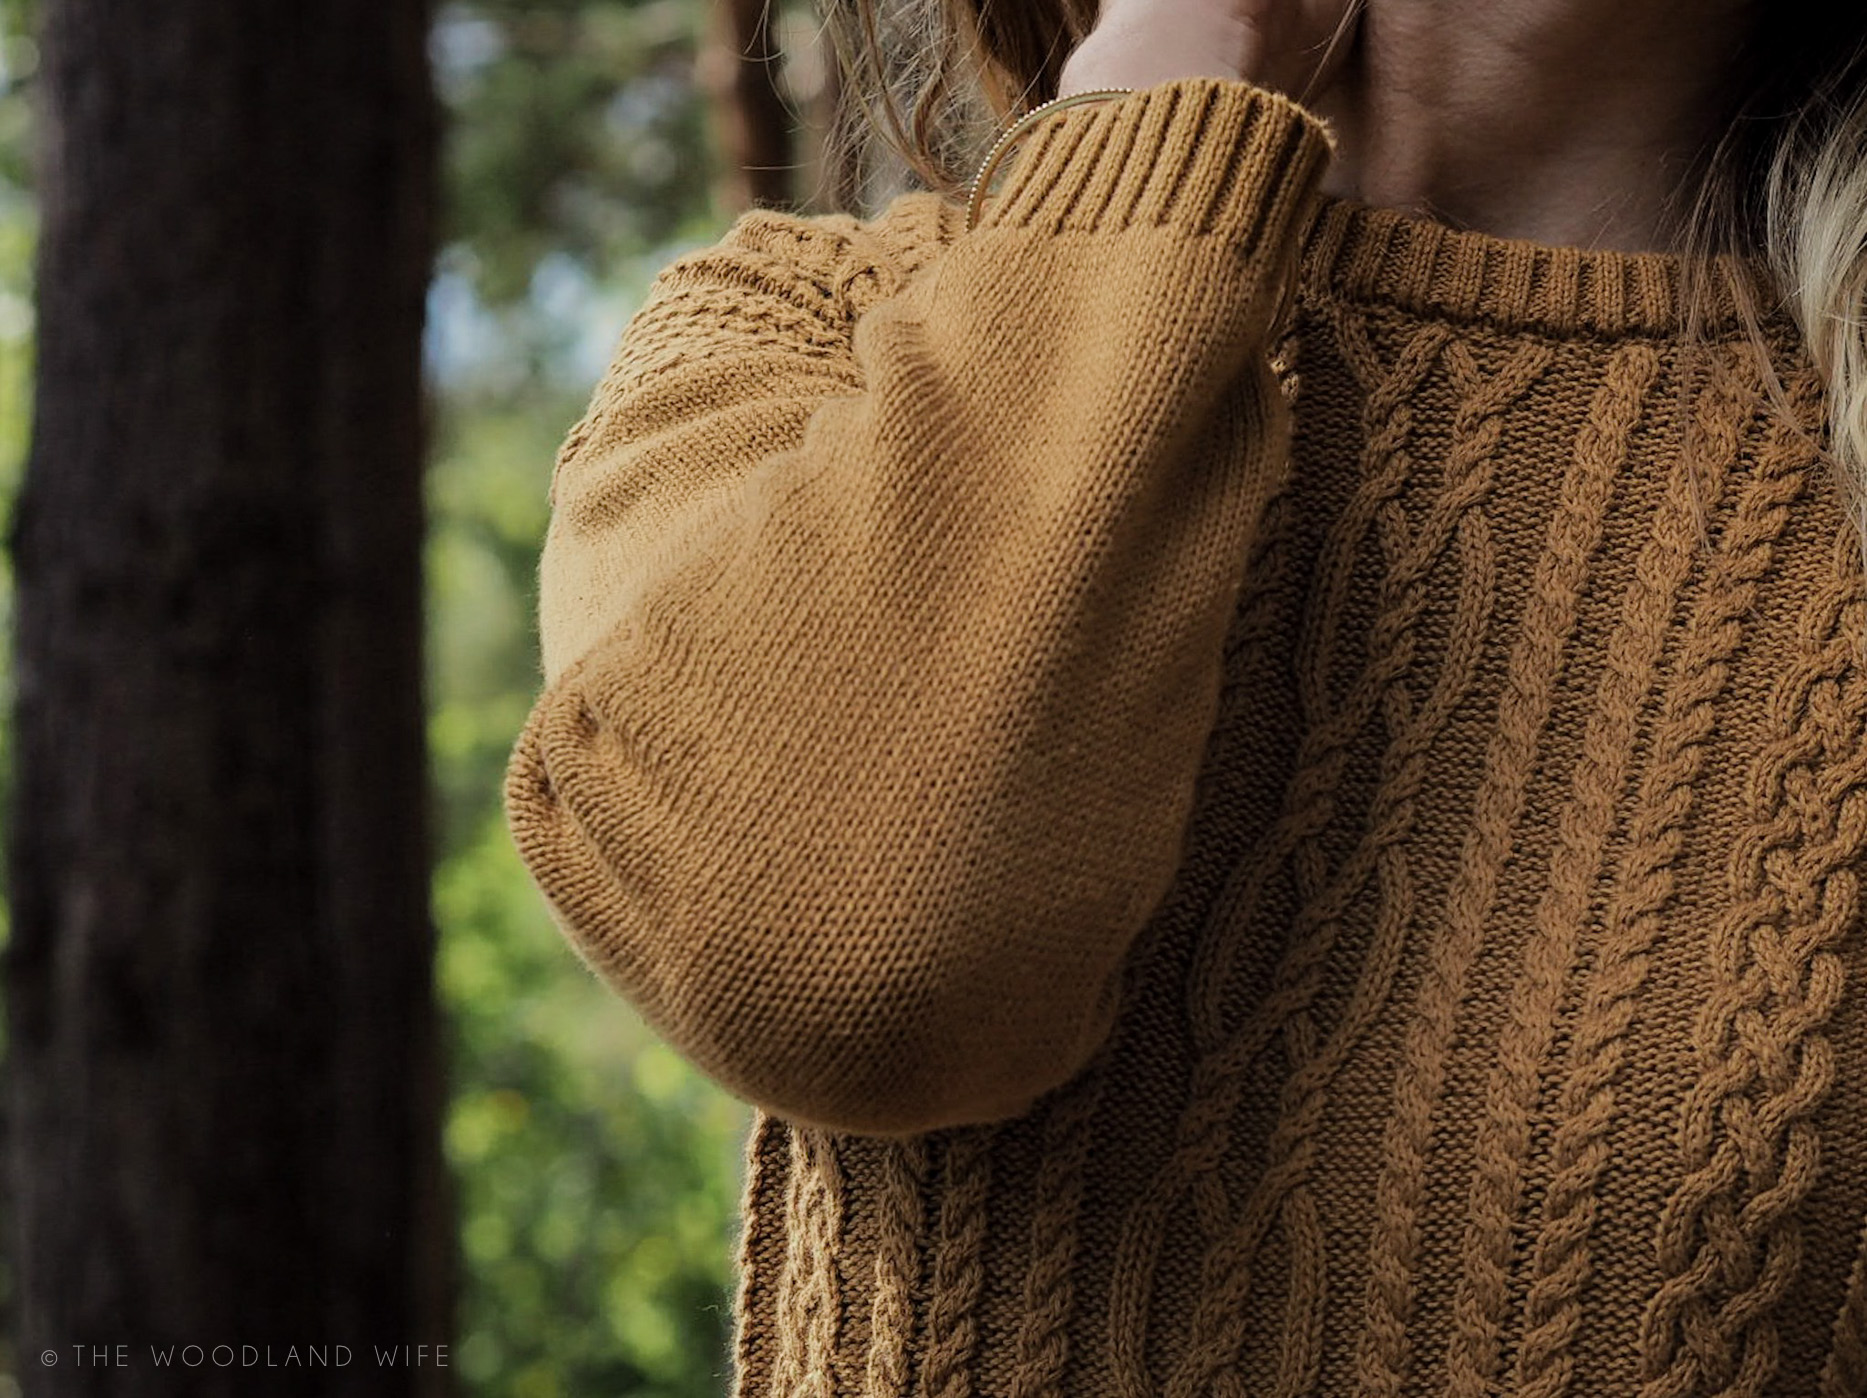 The Woodland Wife - Thought Clothing - Ethical - AW17 - Mustard Cable Knit Jumper and Jeans-The Season of Change